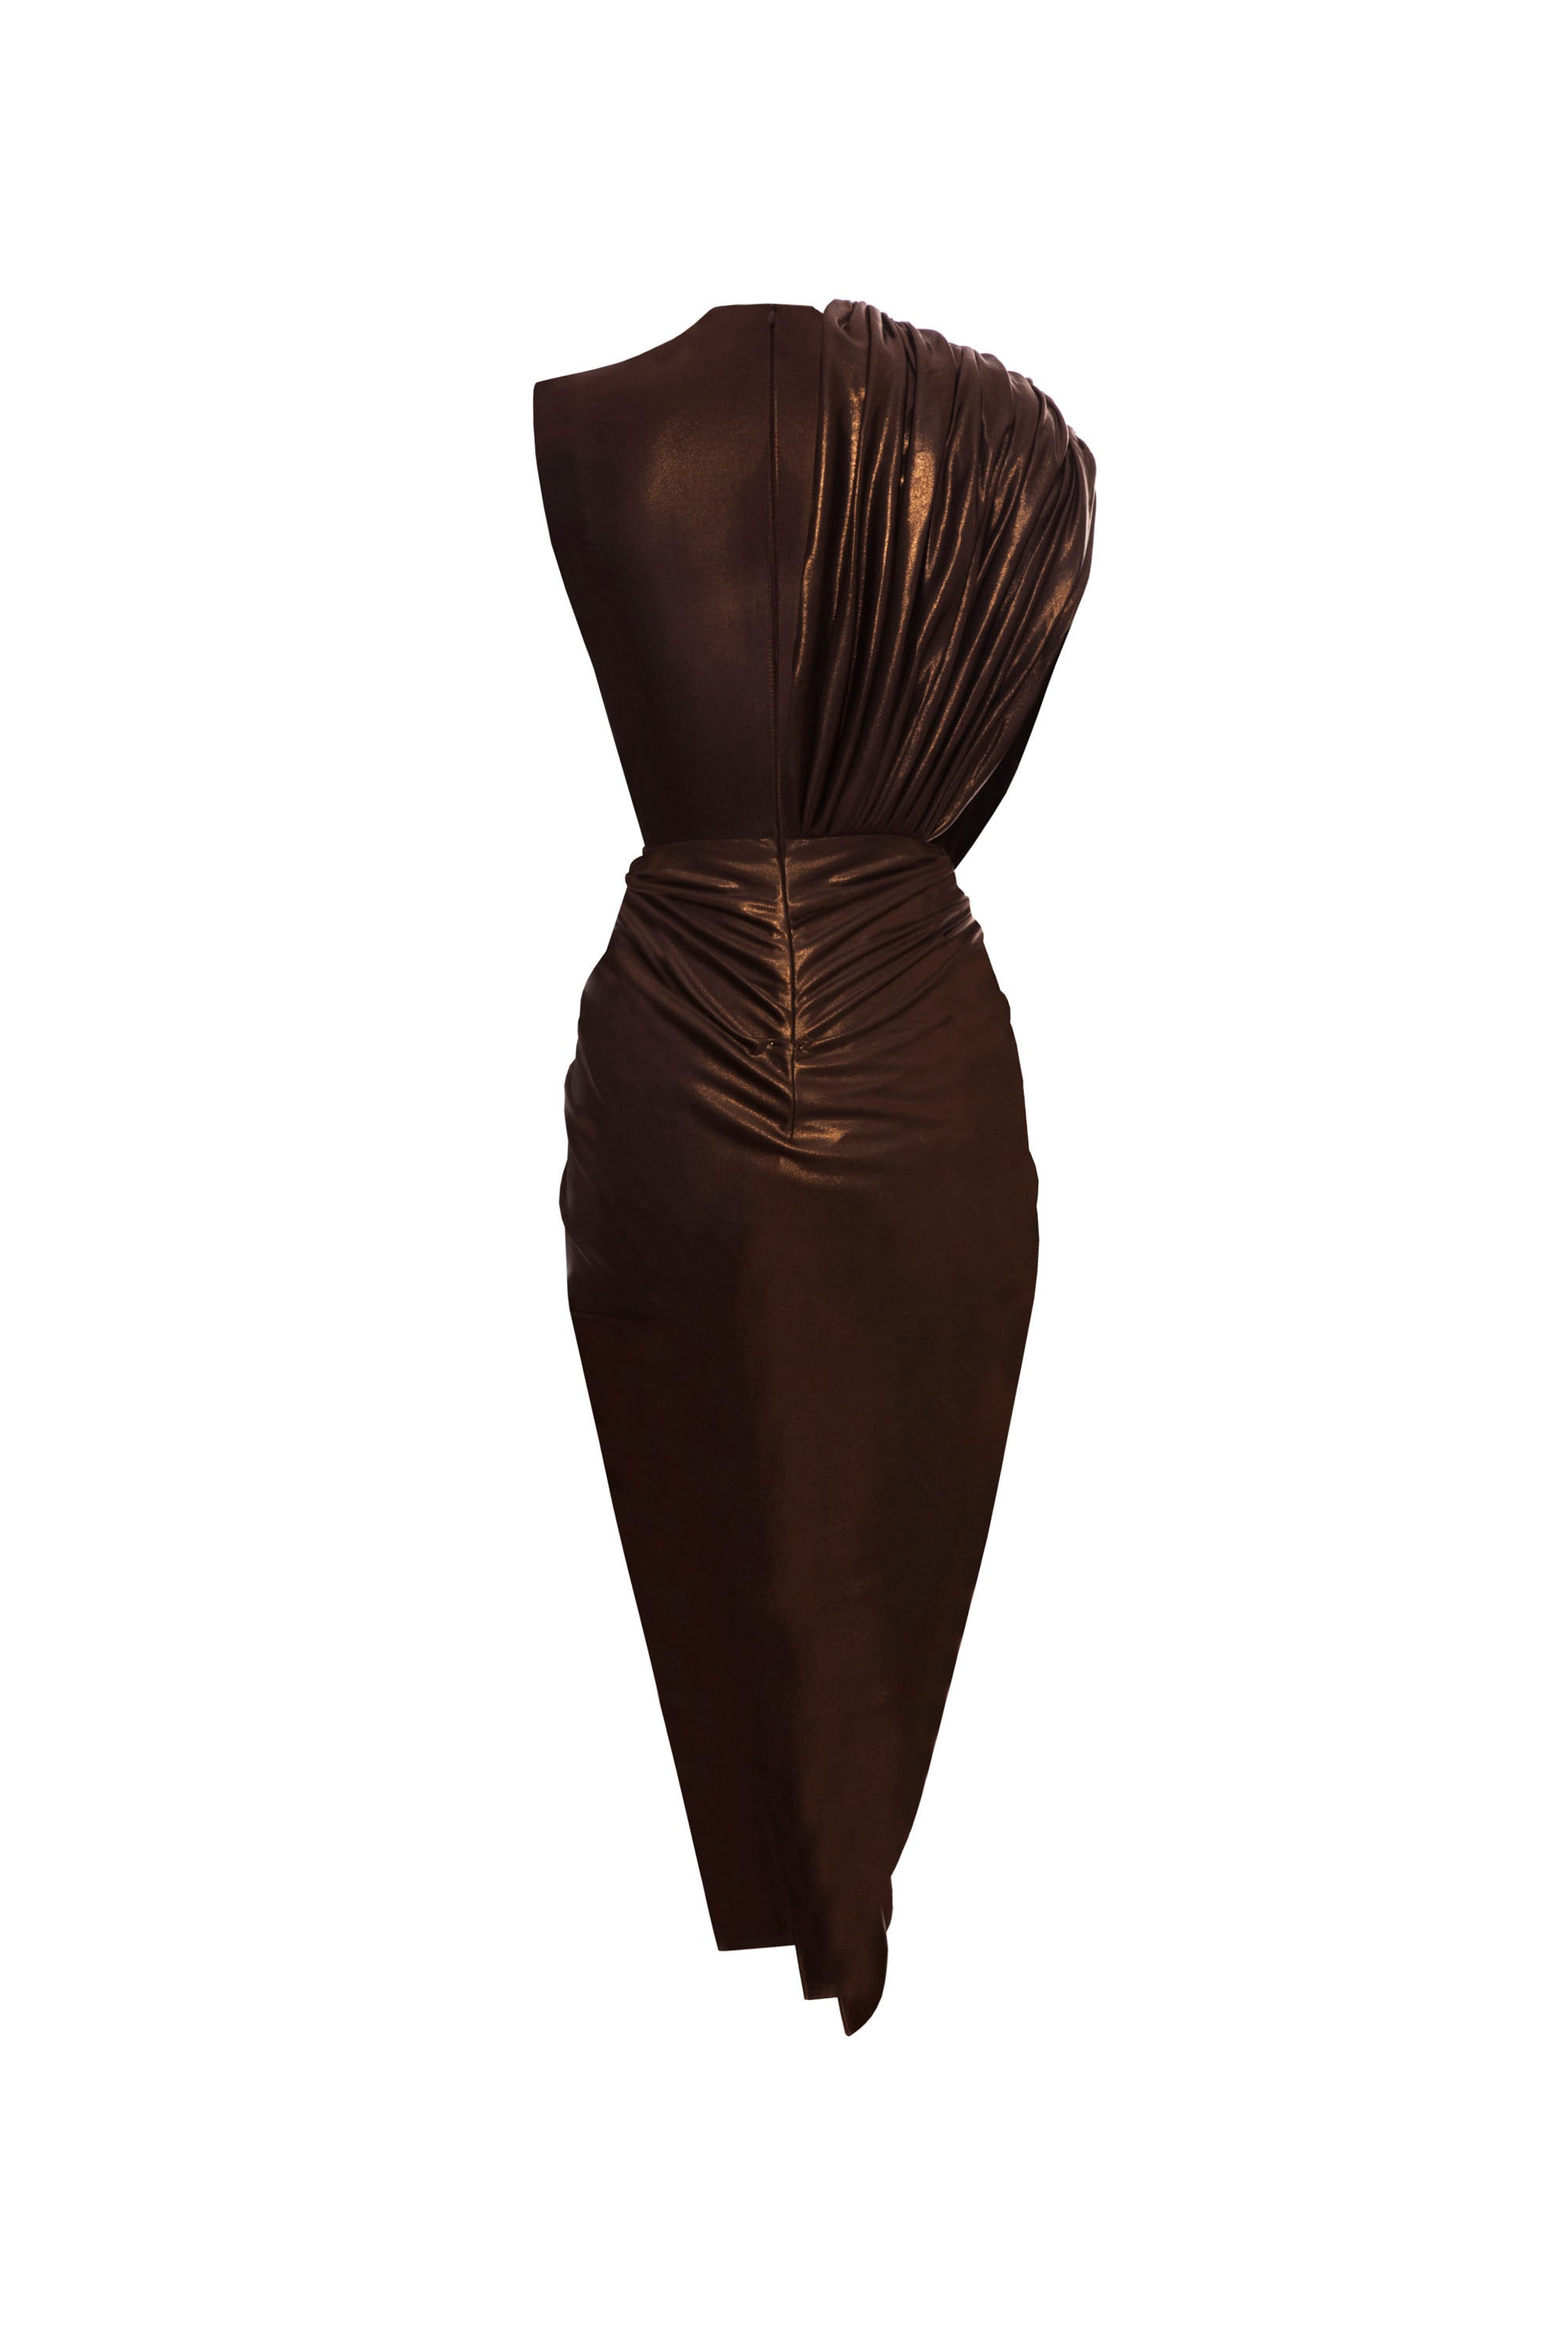 Dress RTWED6-COPPER